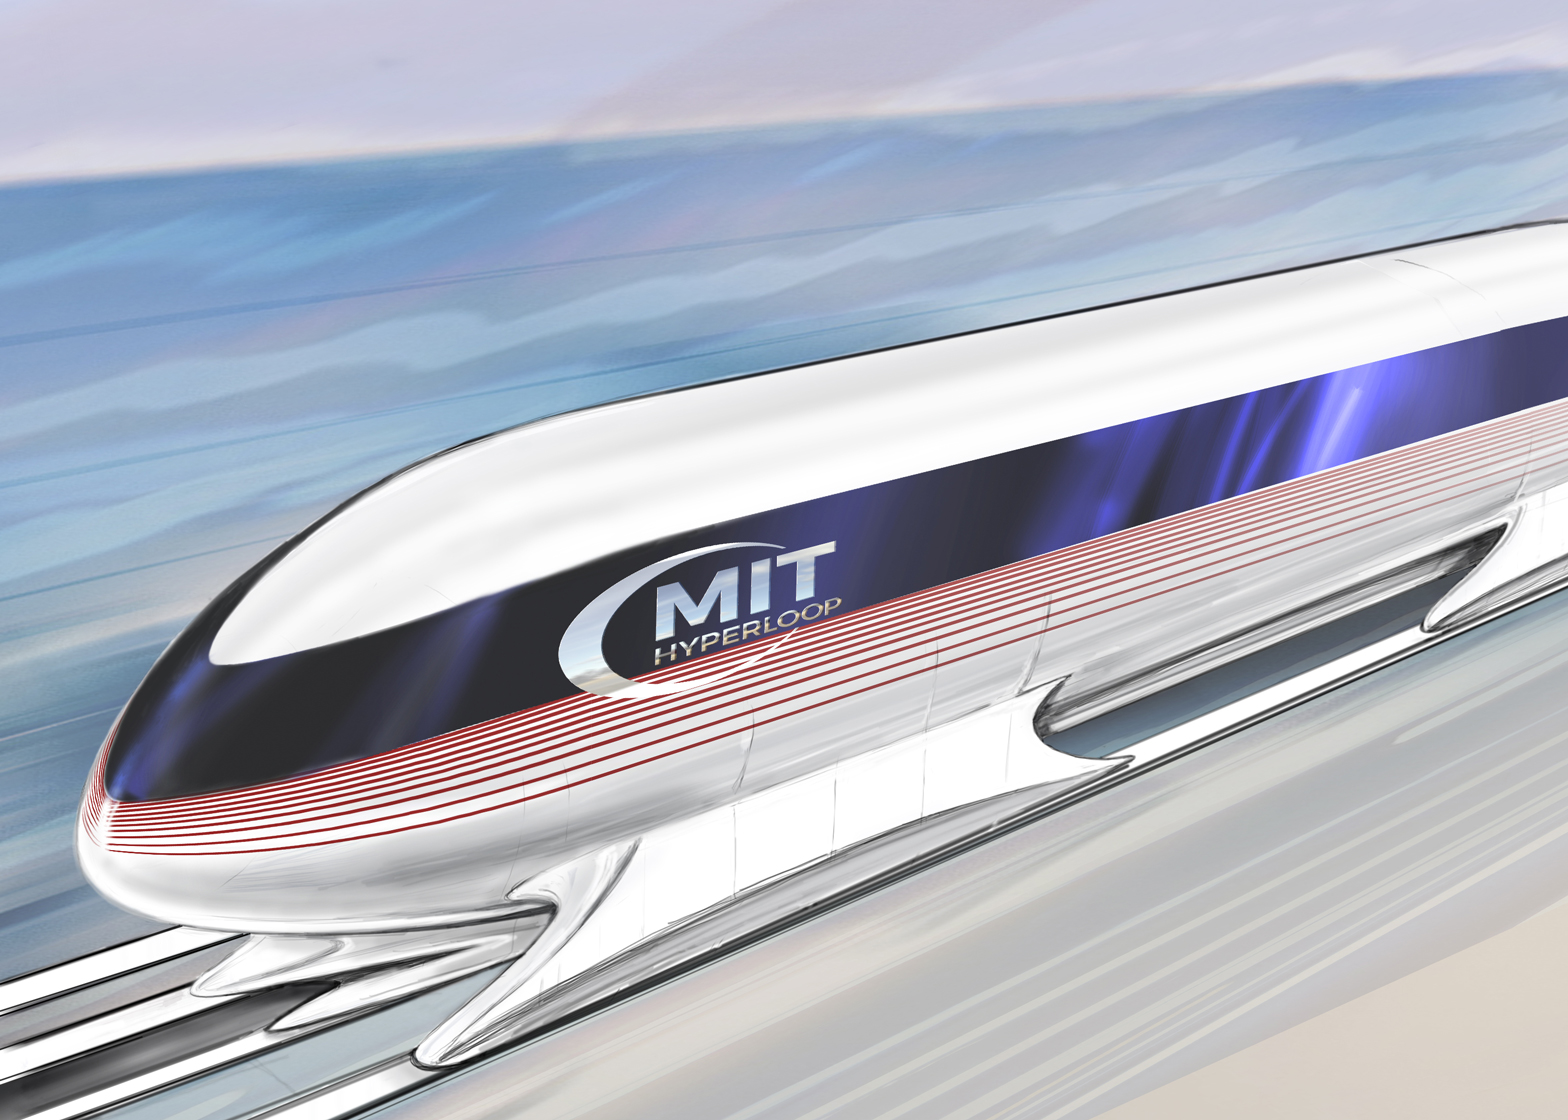 Hyperloop competition winners announced, see the top design